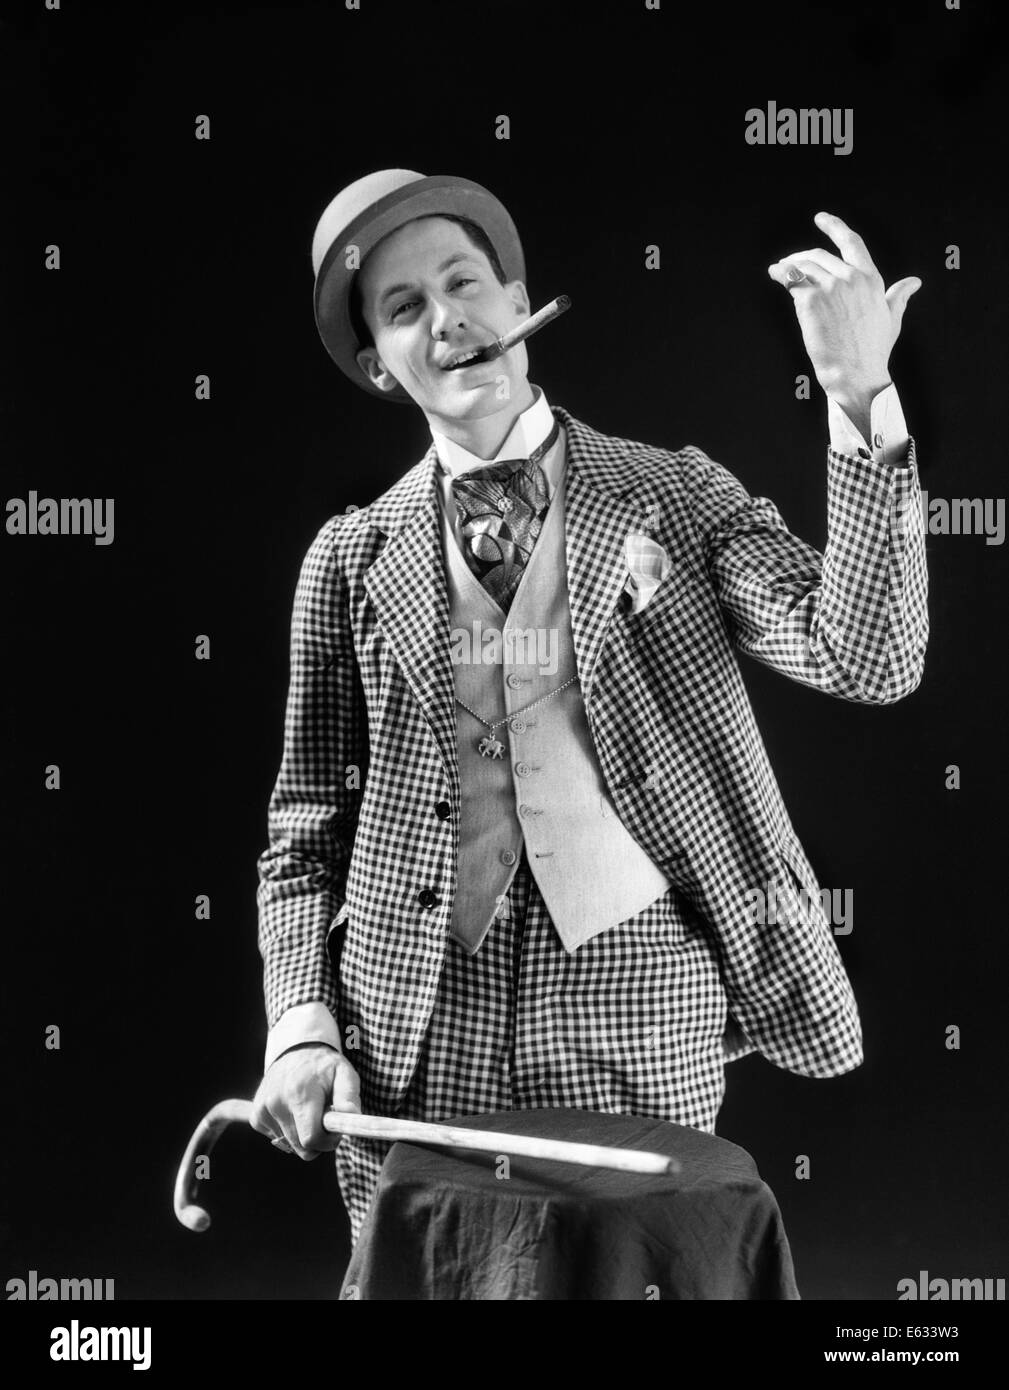 3b577362f6d 1910s 1920s CHARACTER CON MAN BARKER BOWLER HAT LOUD VAUDEVILLE TYPE  CLOTHES HOLDING CANE SMOKING CIGAR CONFIDENCE GAME